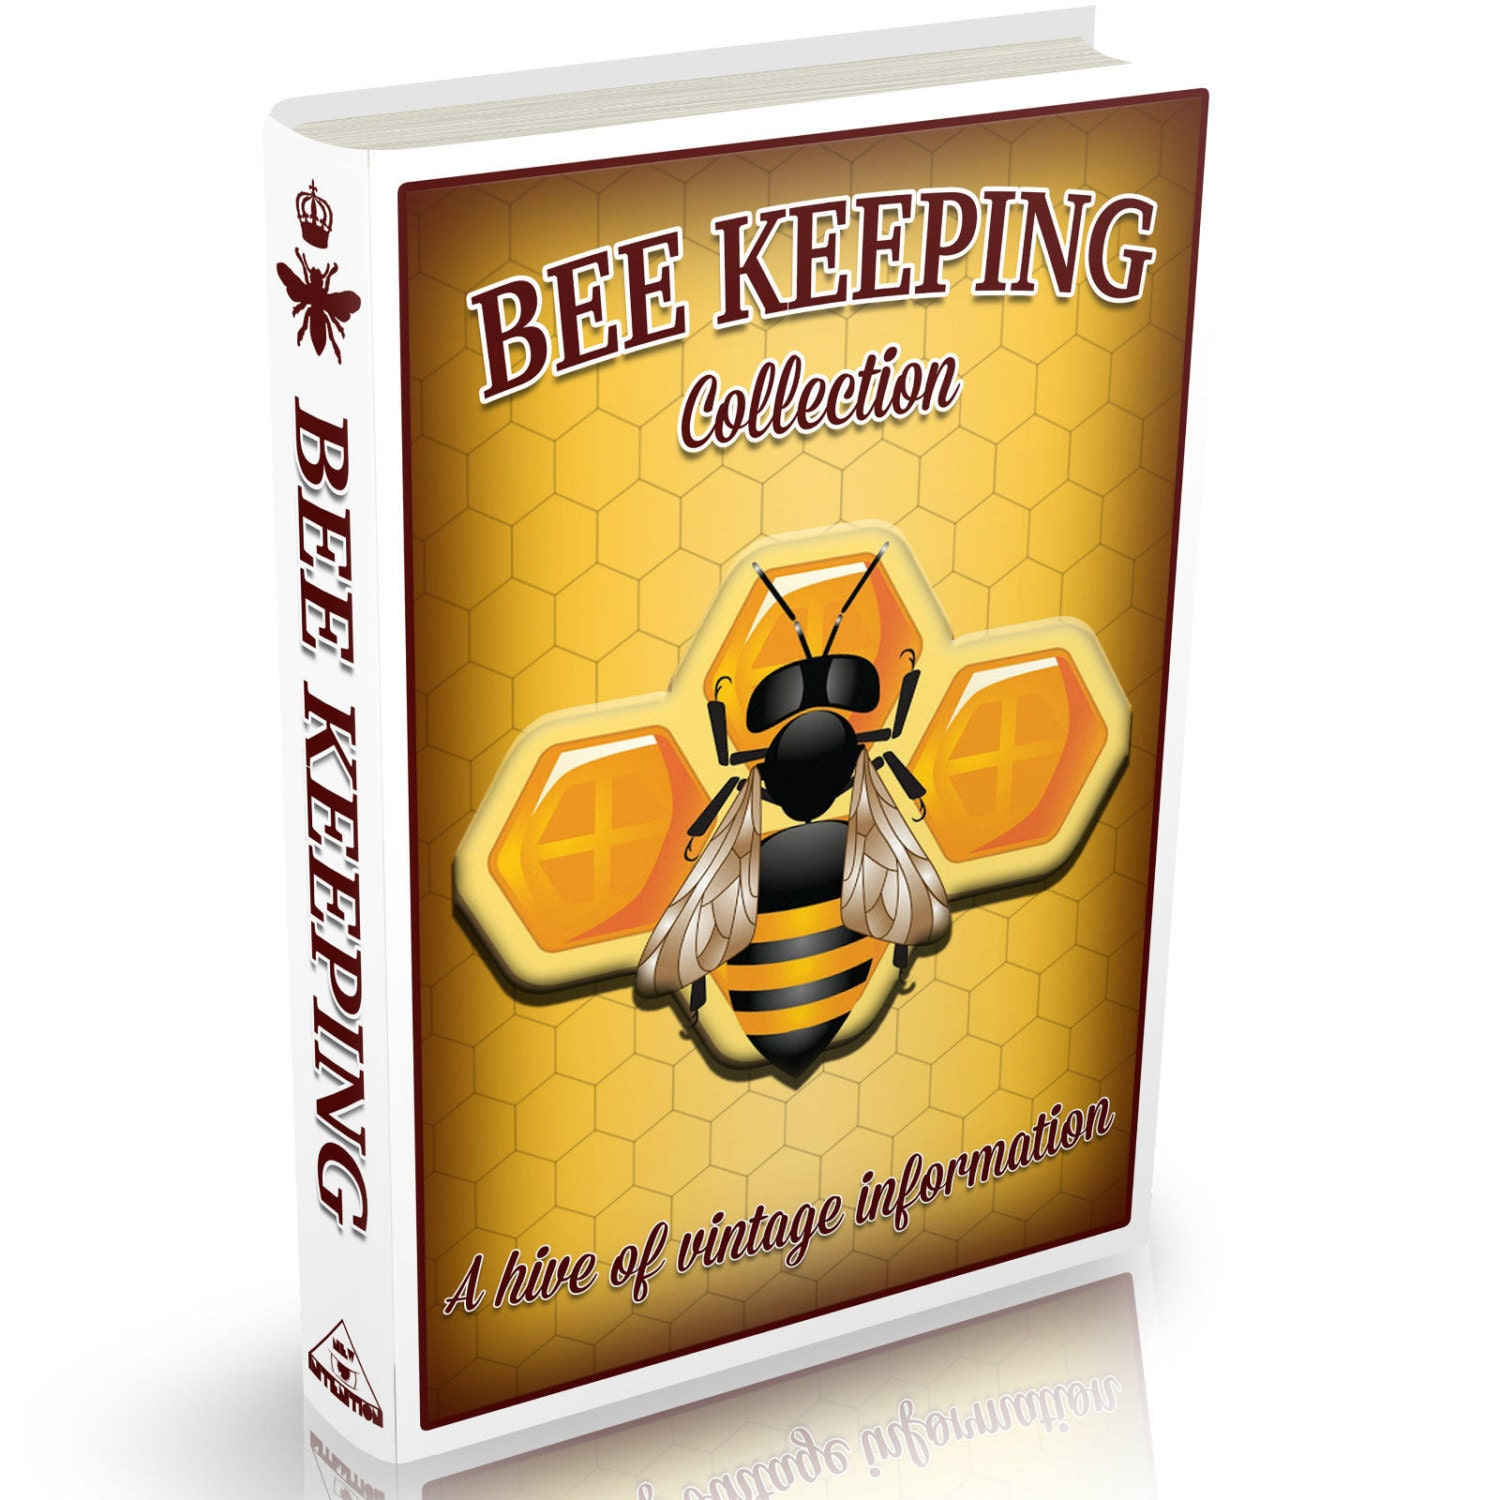 Bee Keeper's Guide to the Management of Bees in Moveable Comb Hives